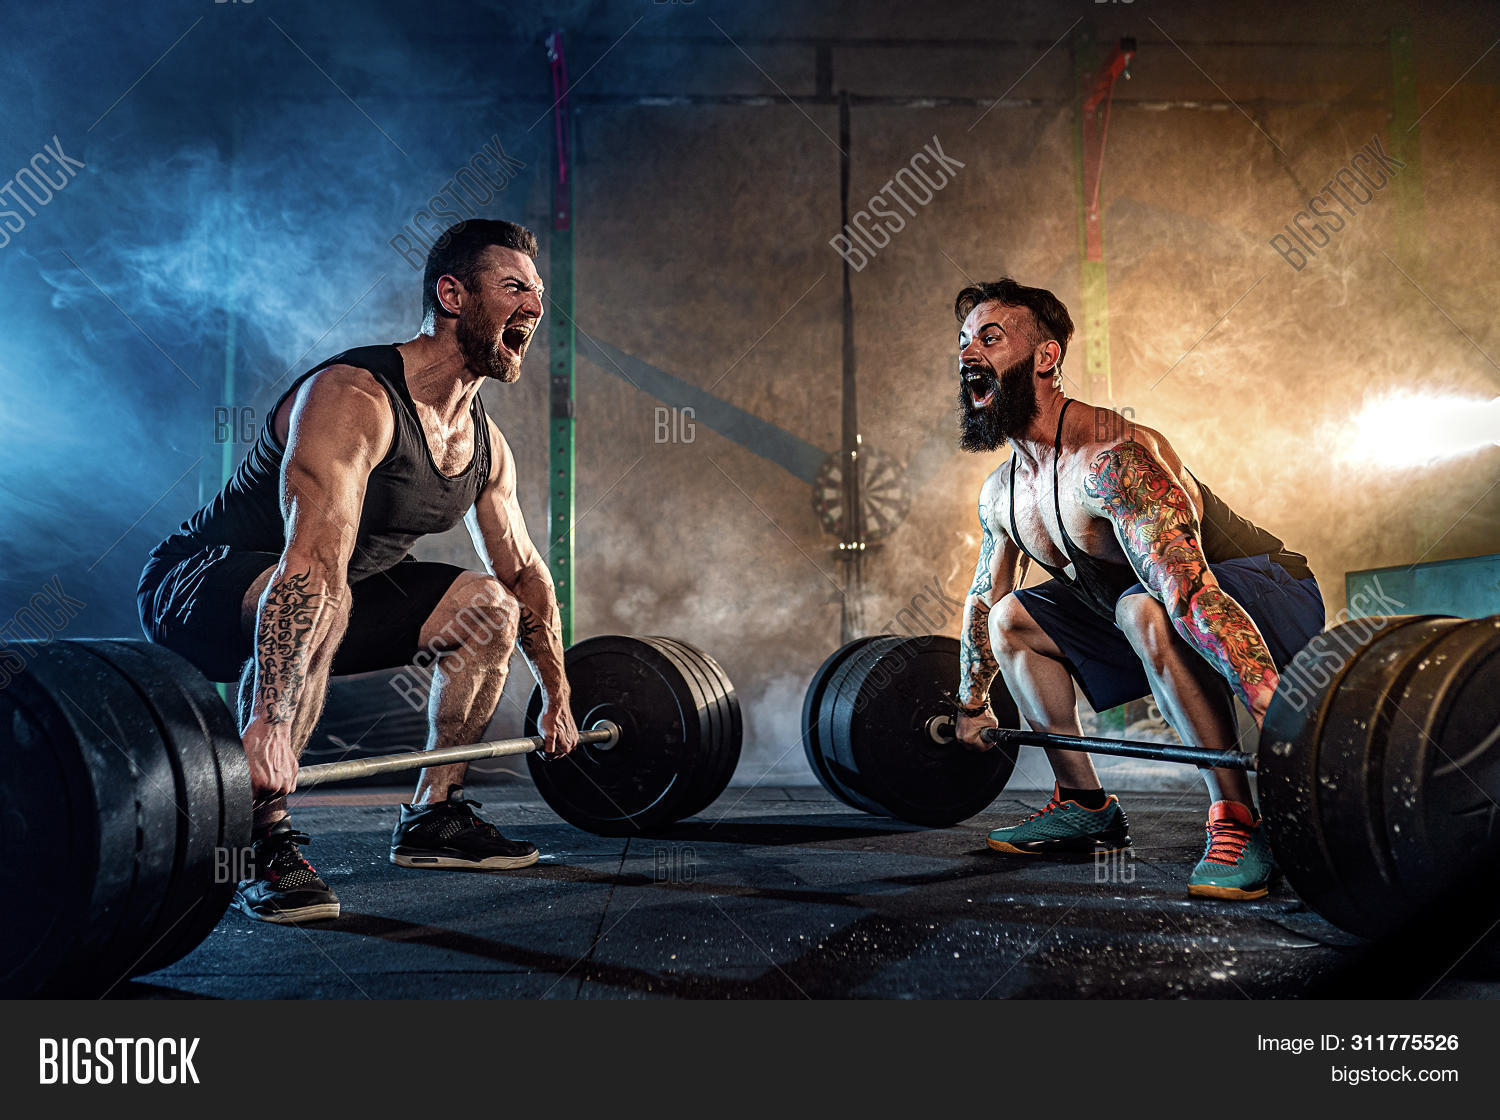 activity,adult,athlete,athletic,back,bar,body,bodybuilder,bodybuilding,caucasian,challenge,deadlift,determination,effort,energy,equipment,exercise,fitness,friends,gym,gymnastic,handsome,healthy,heavy,instructor,lifestyle,lift,male,man,men,motivation,muscle,muscular,outdoor,people,person,power,smoke,sport,sportsman,sportswear,strength,strong,tattoo,training,two,workout,young